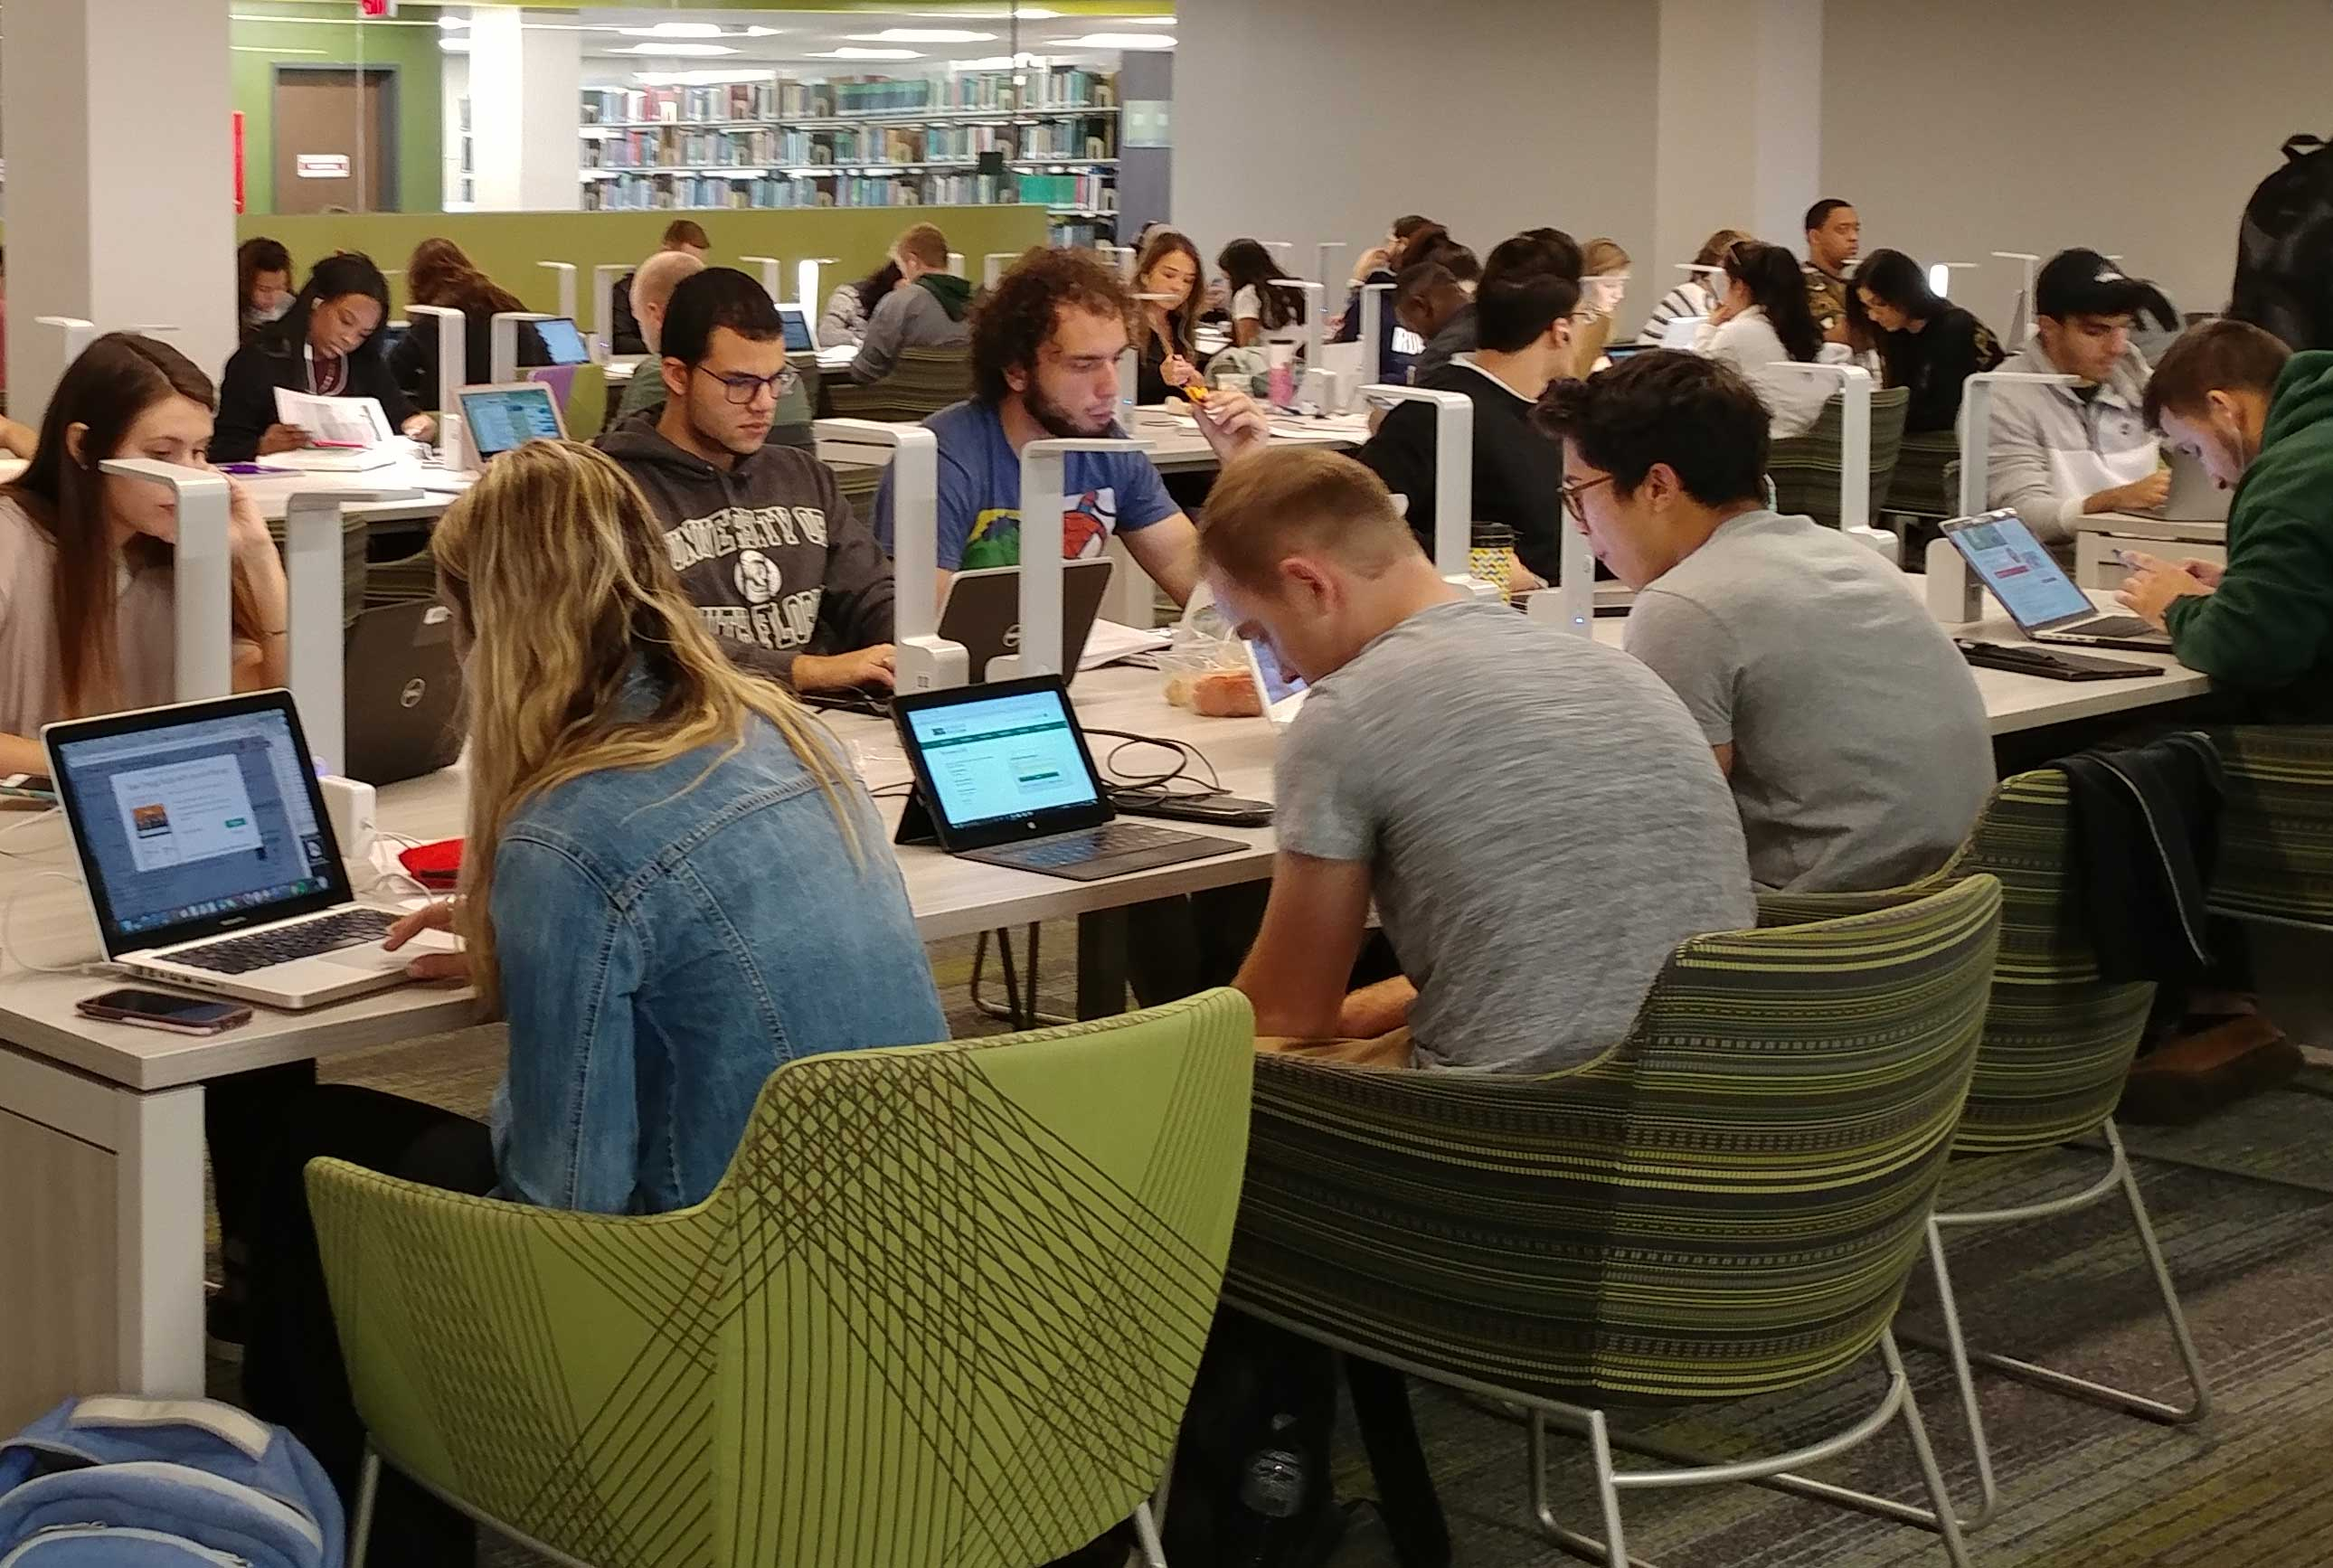 An image of students seated in the library using laptops